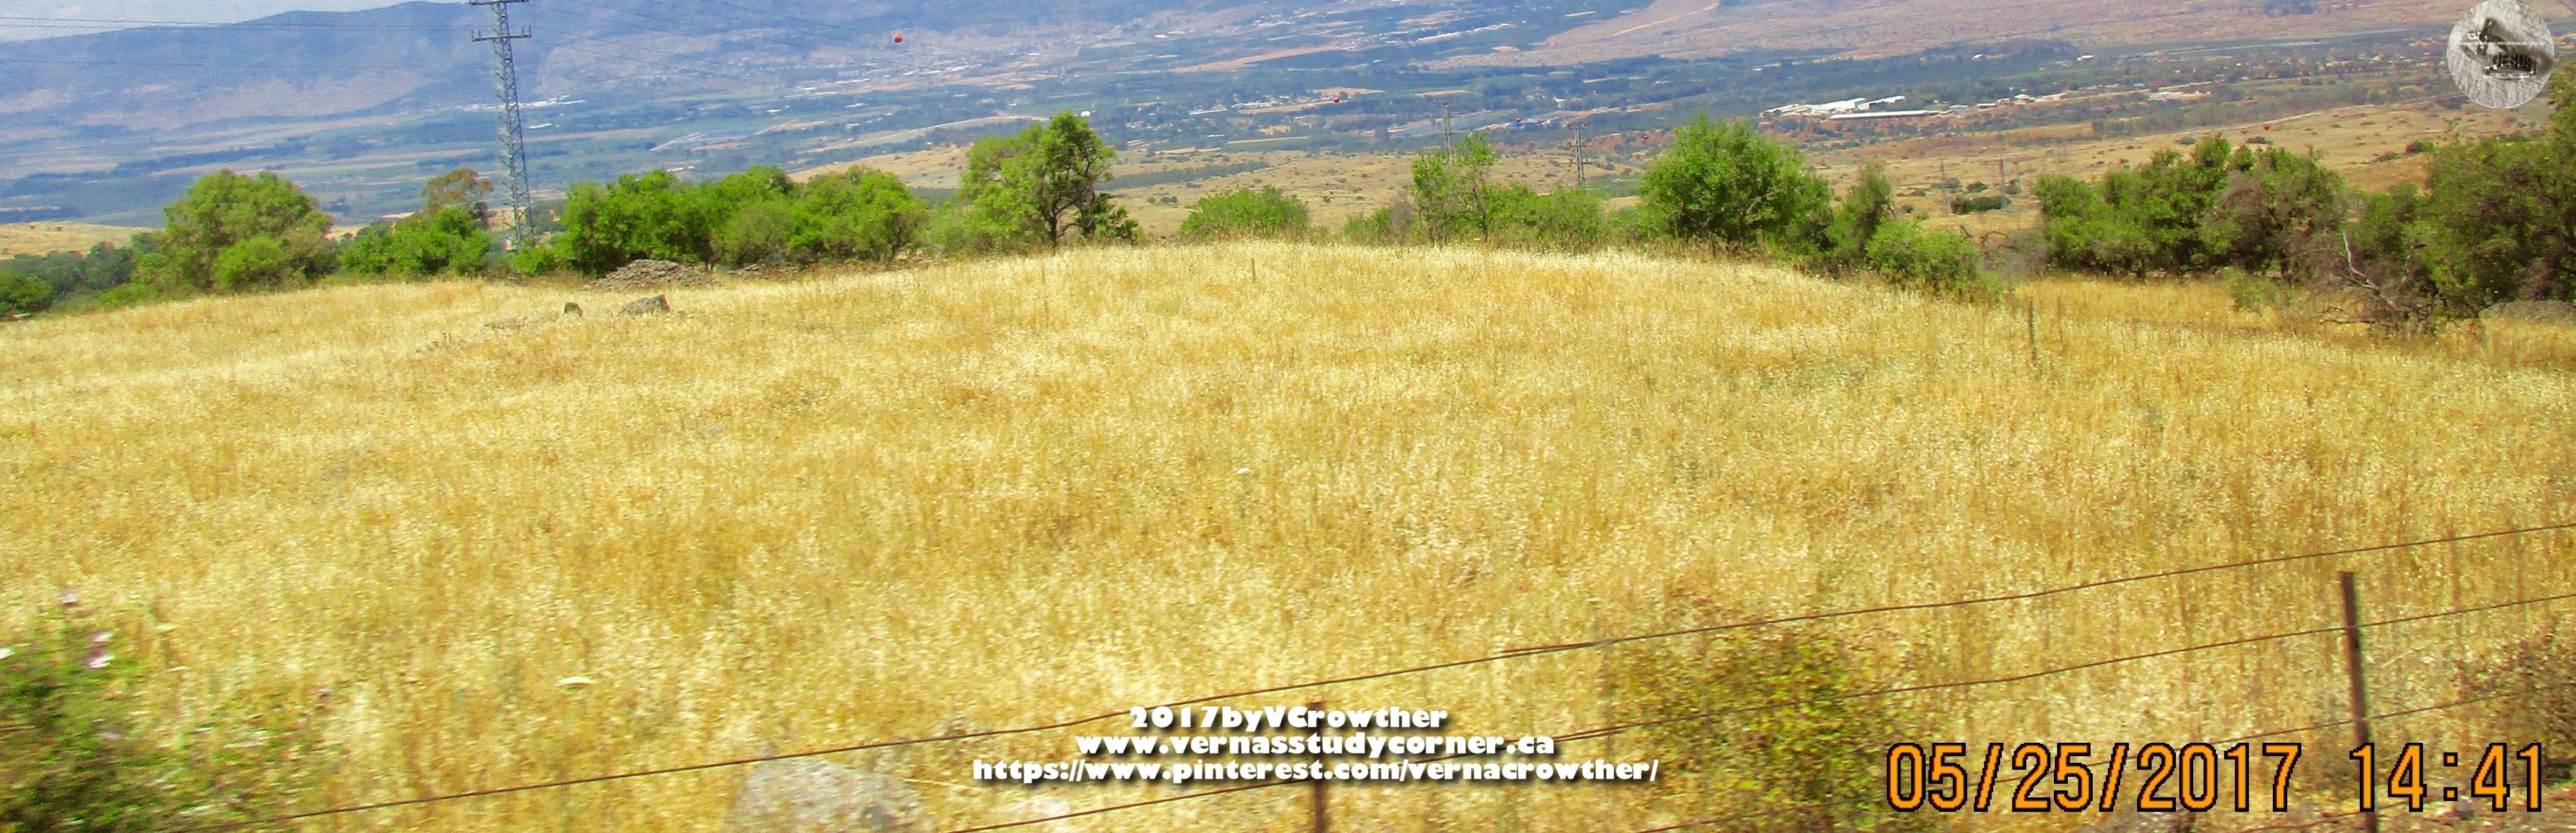 Wheat field in galilee hills israel 2017 interests and wheat field in galilee hills israel 2017 buycottarizona Choice Image